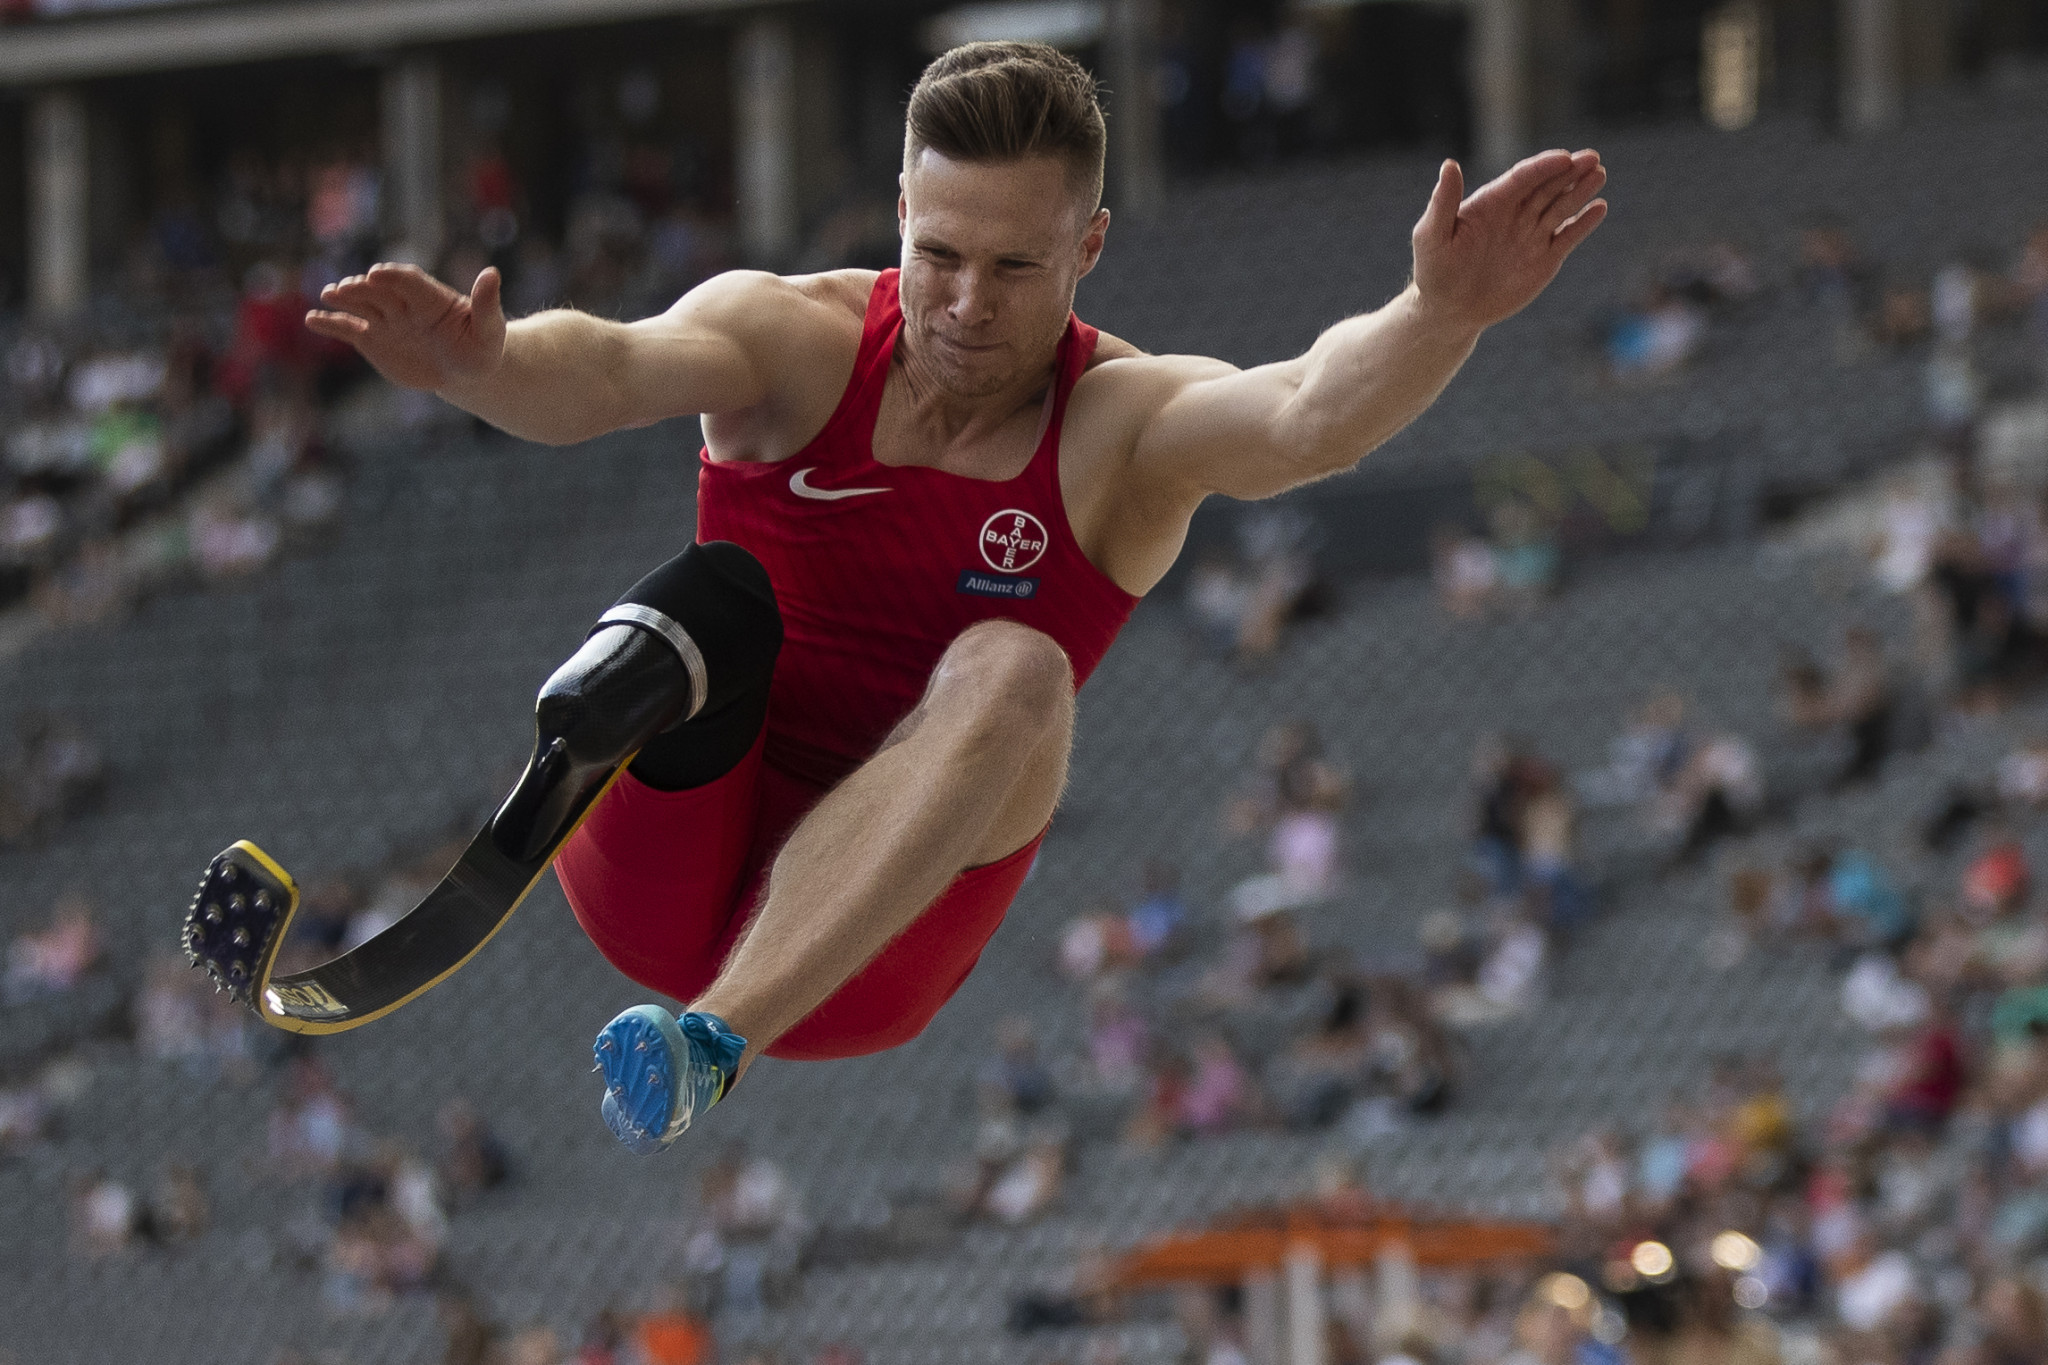 Germany's three-time Paralympic gold medal winning long jumper Markus Rehm  will aim to break his current T64 world record jump of 8.48 metres at a special event in Tokyo to mark one year until the start of the Paralympis ©Getty Images